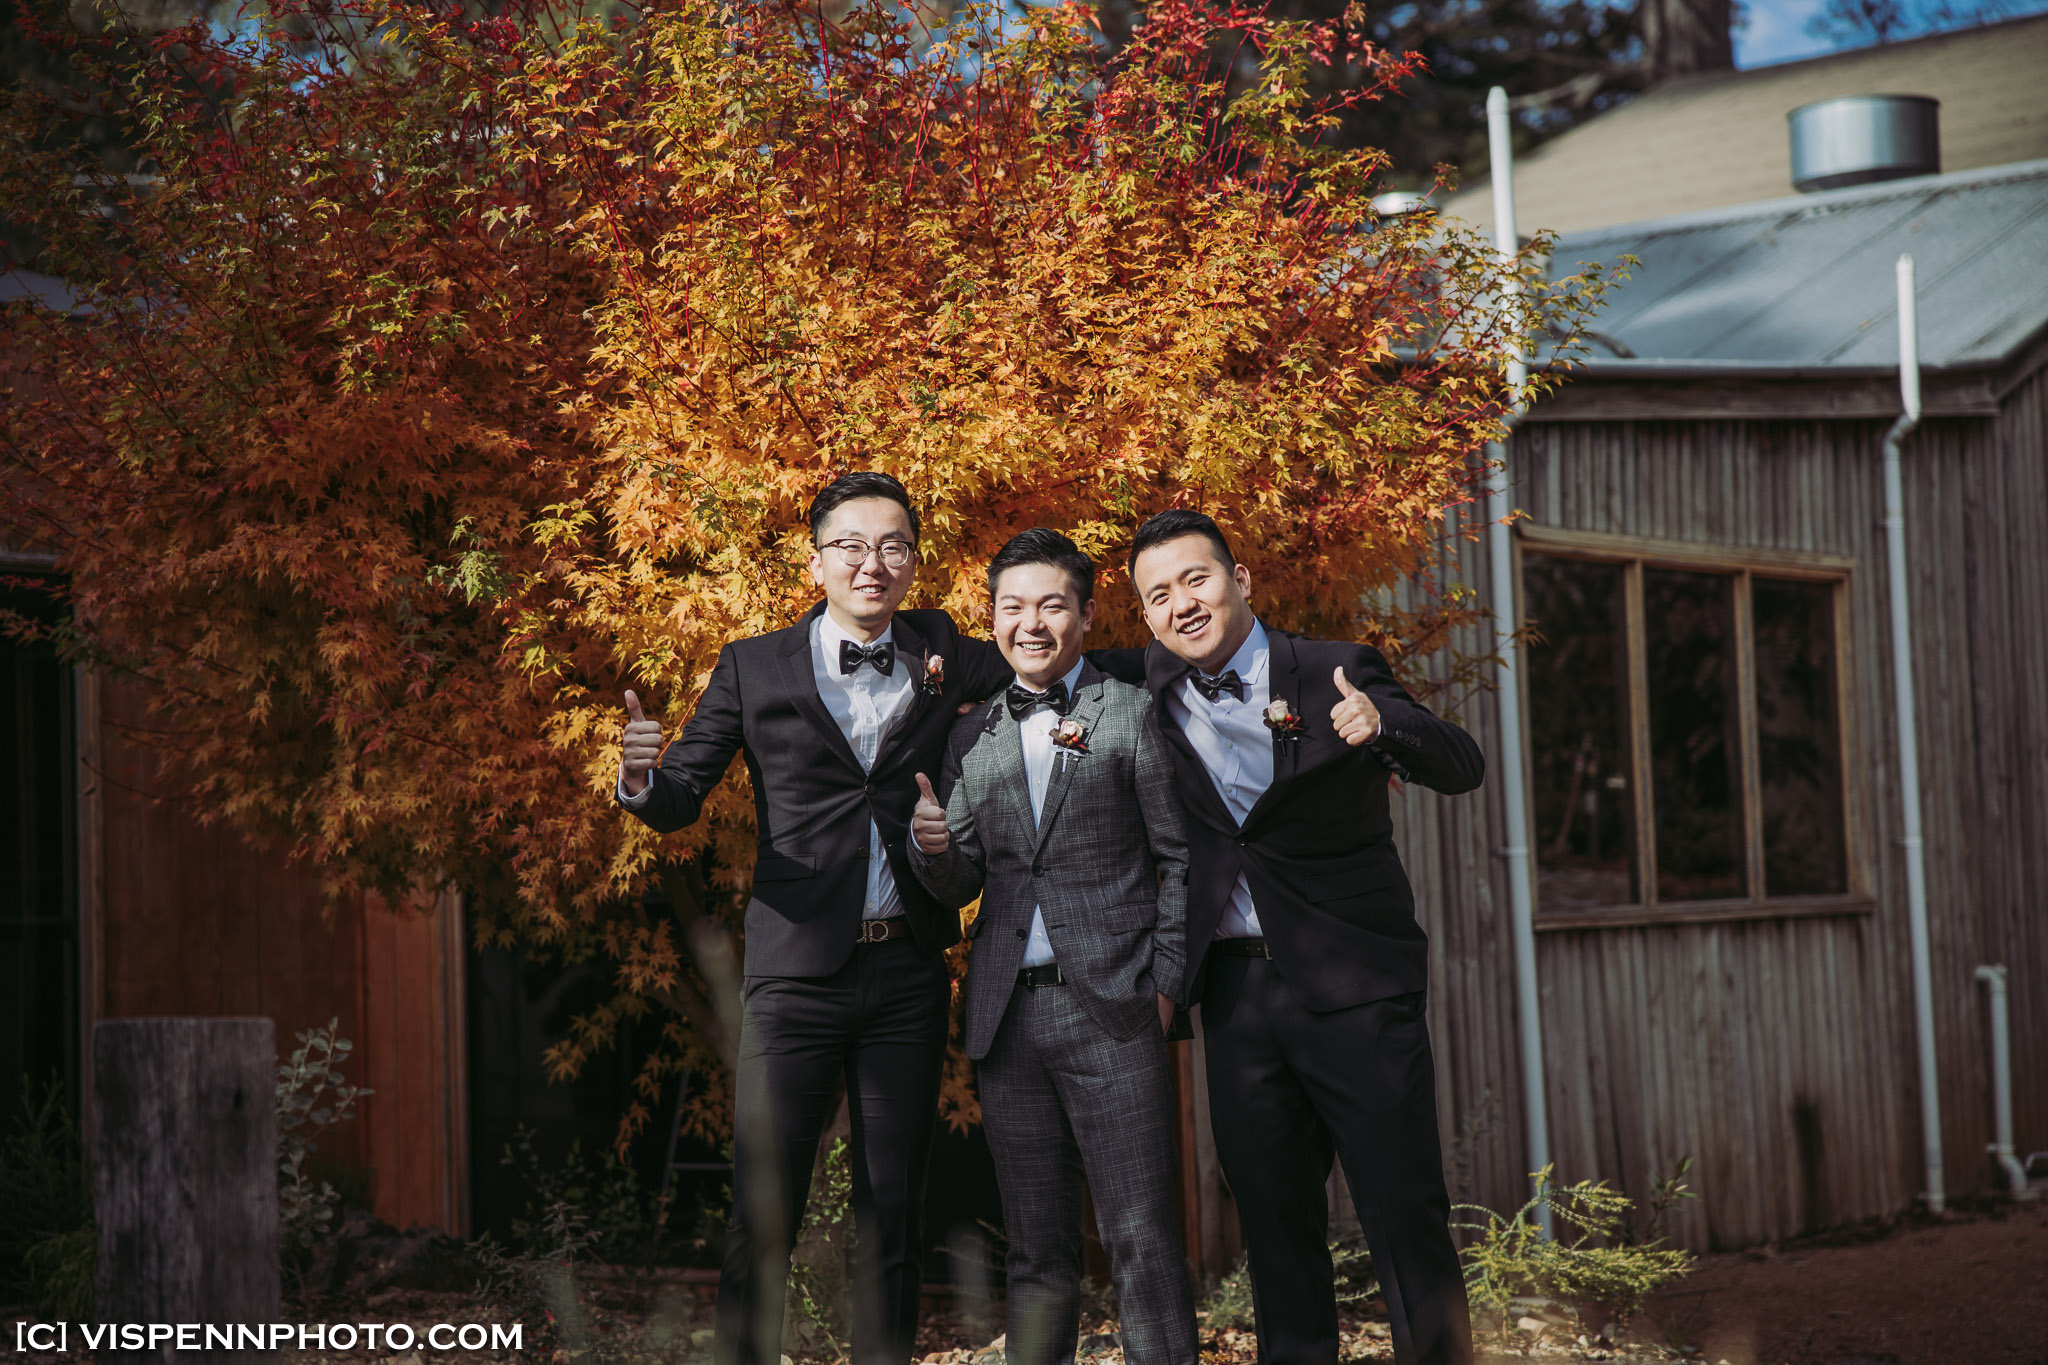 WEDDING DAY Photography Melbourne VISPENN 墨尔本 婚礼跟拍 婚礼摄像 婚礼摄影 结婚照 登记照 DominicHelen 1P 1905 EOSR VISPENN